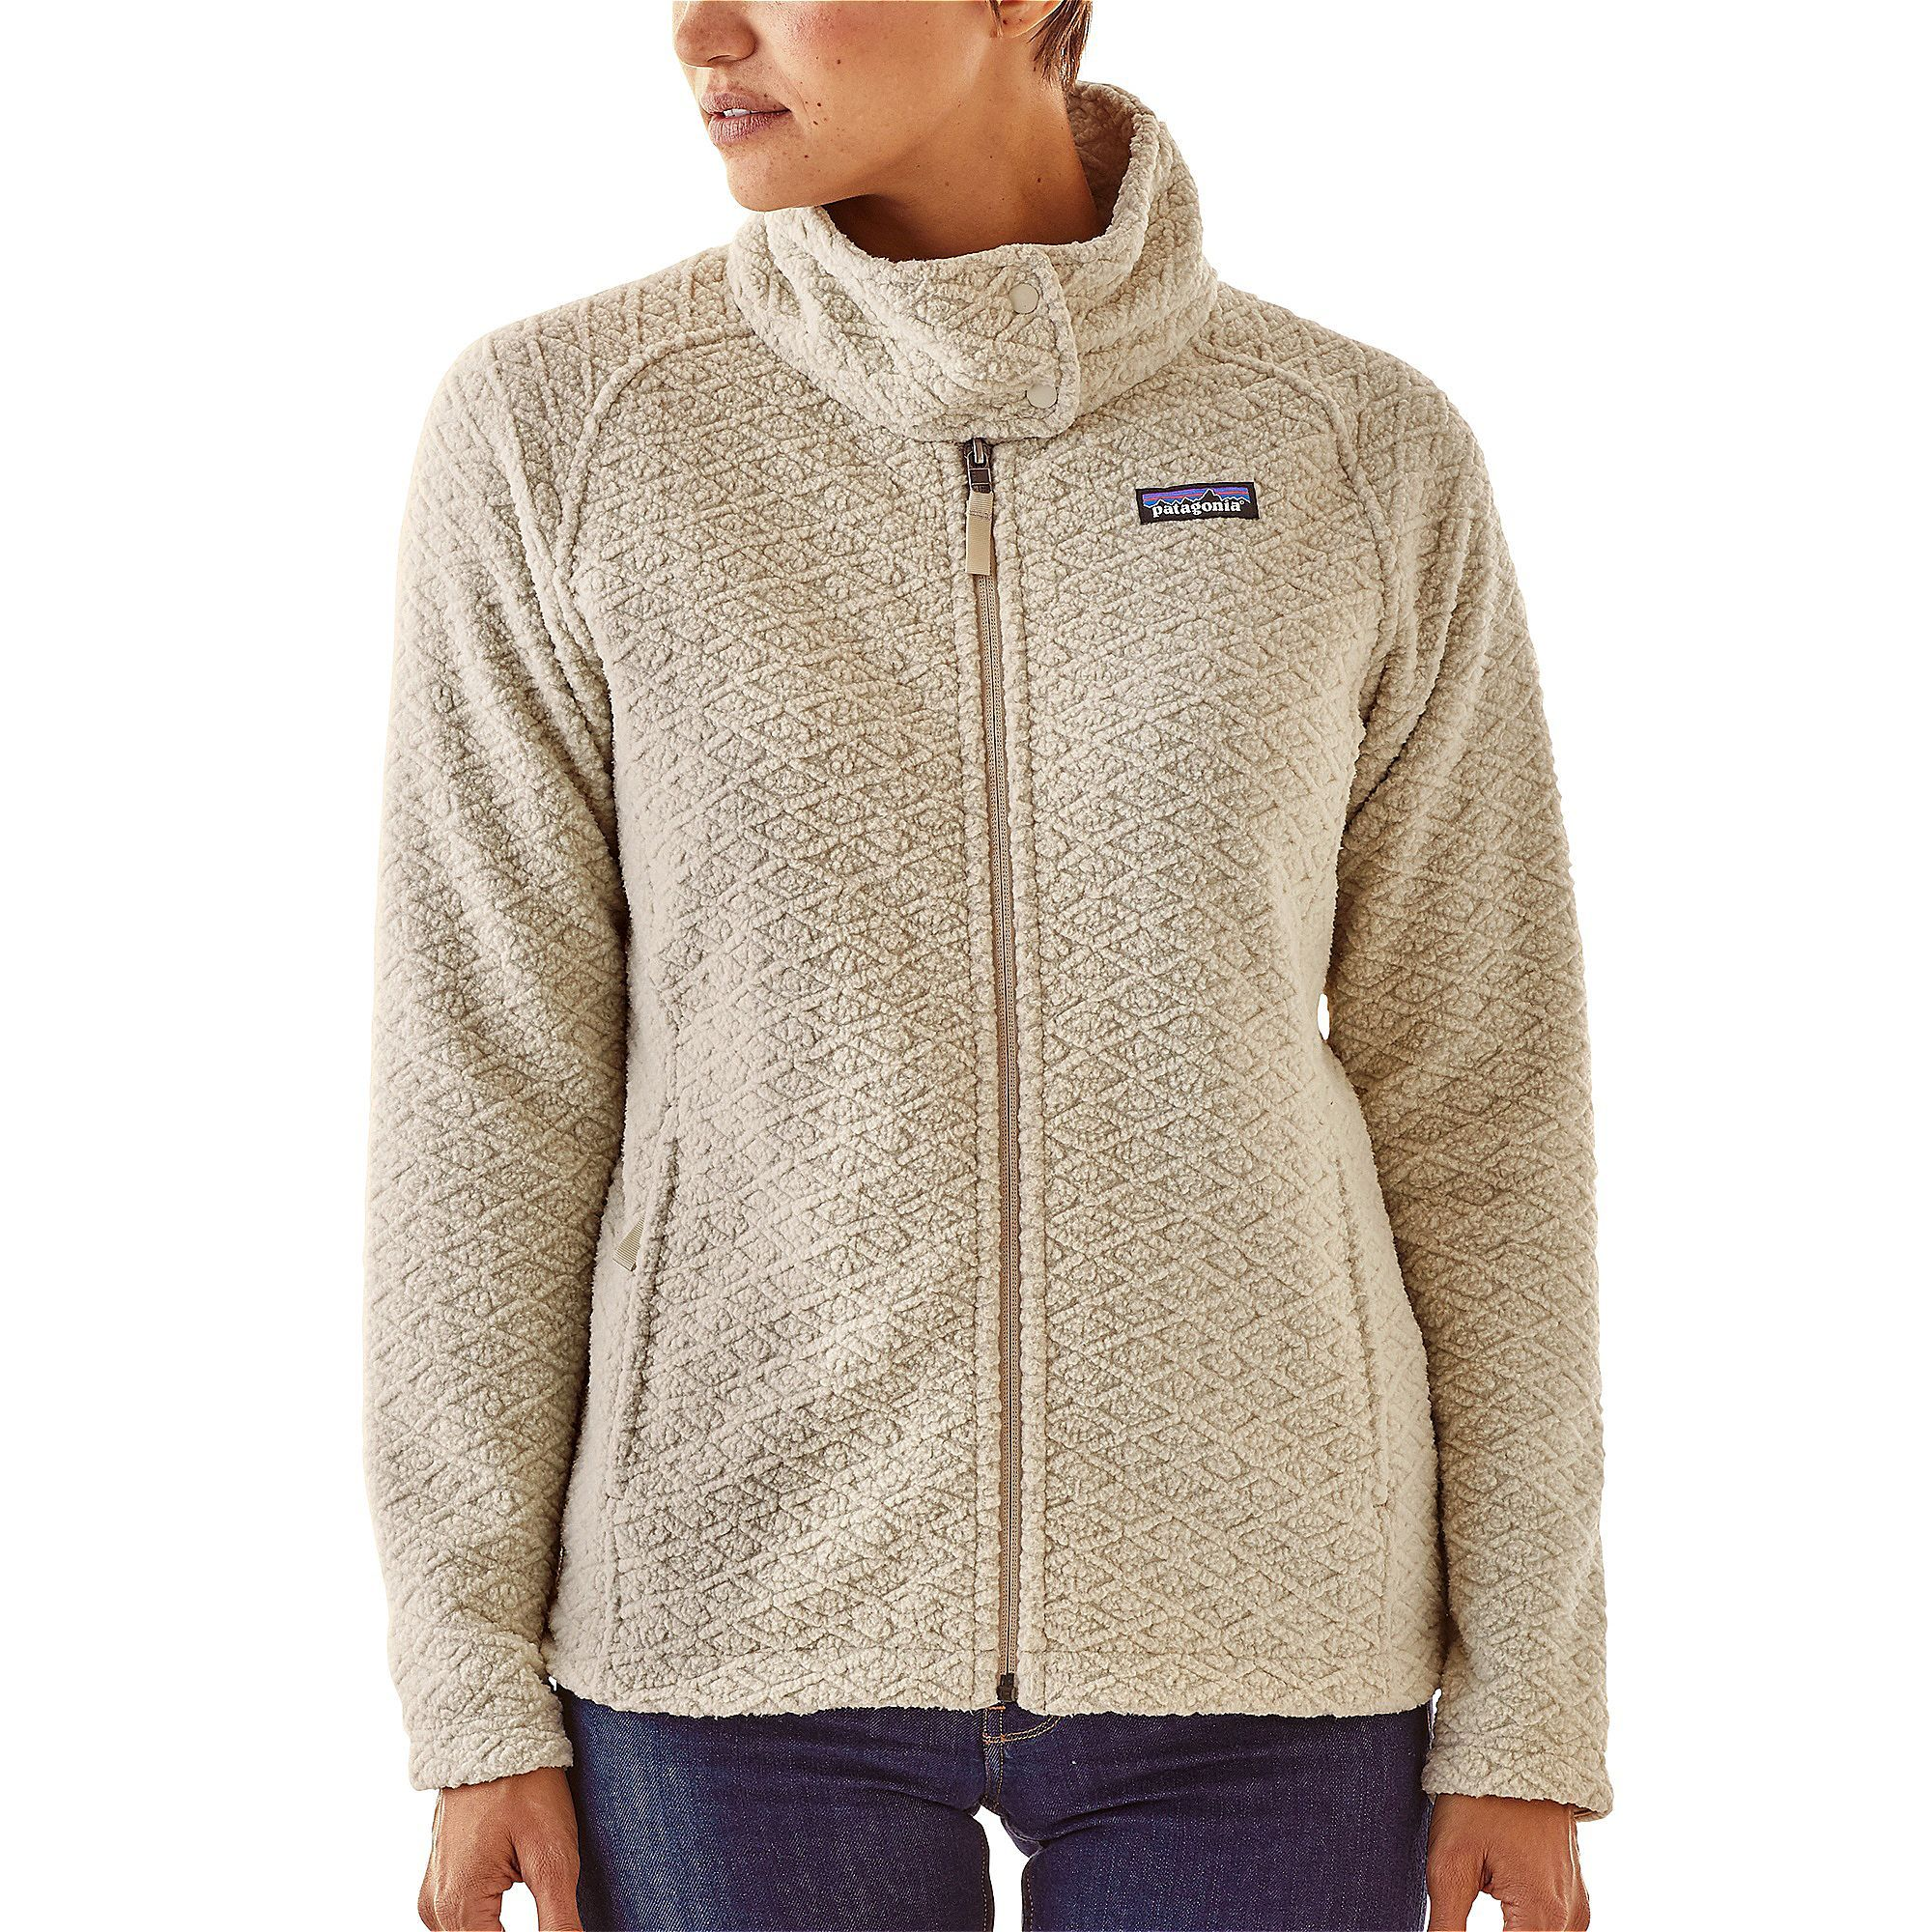 Patagonia Women S Diamond Capra Fleece Jacket Style